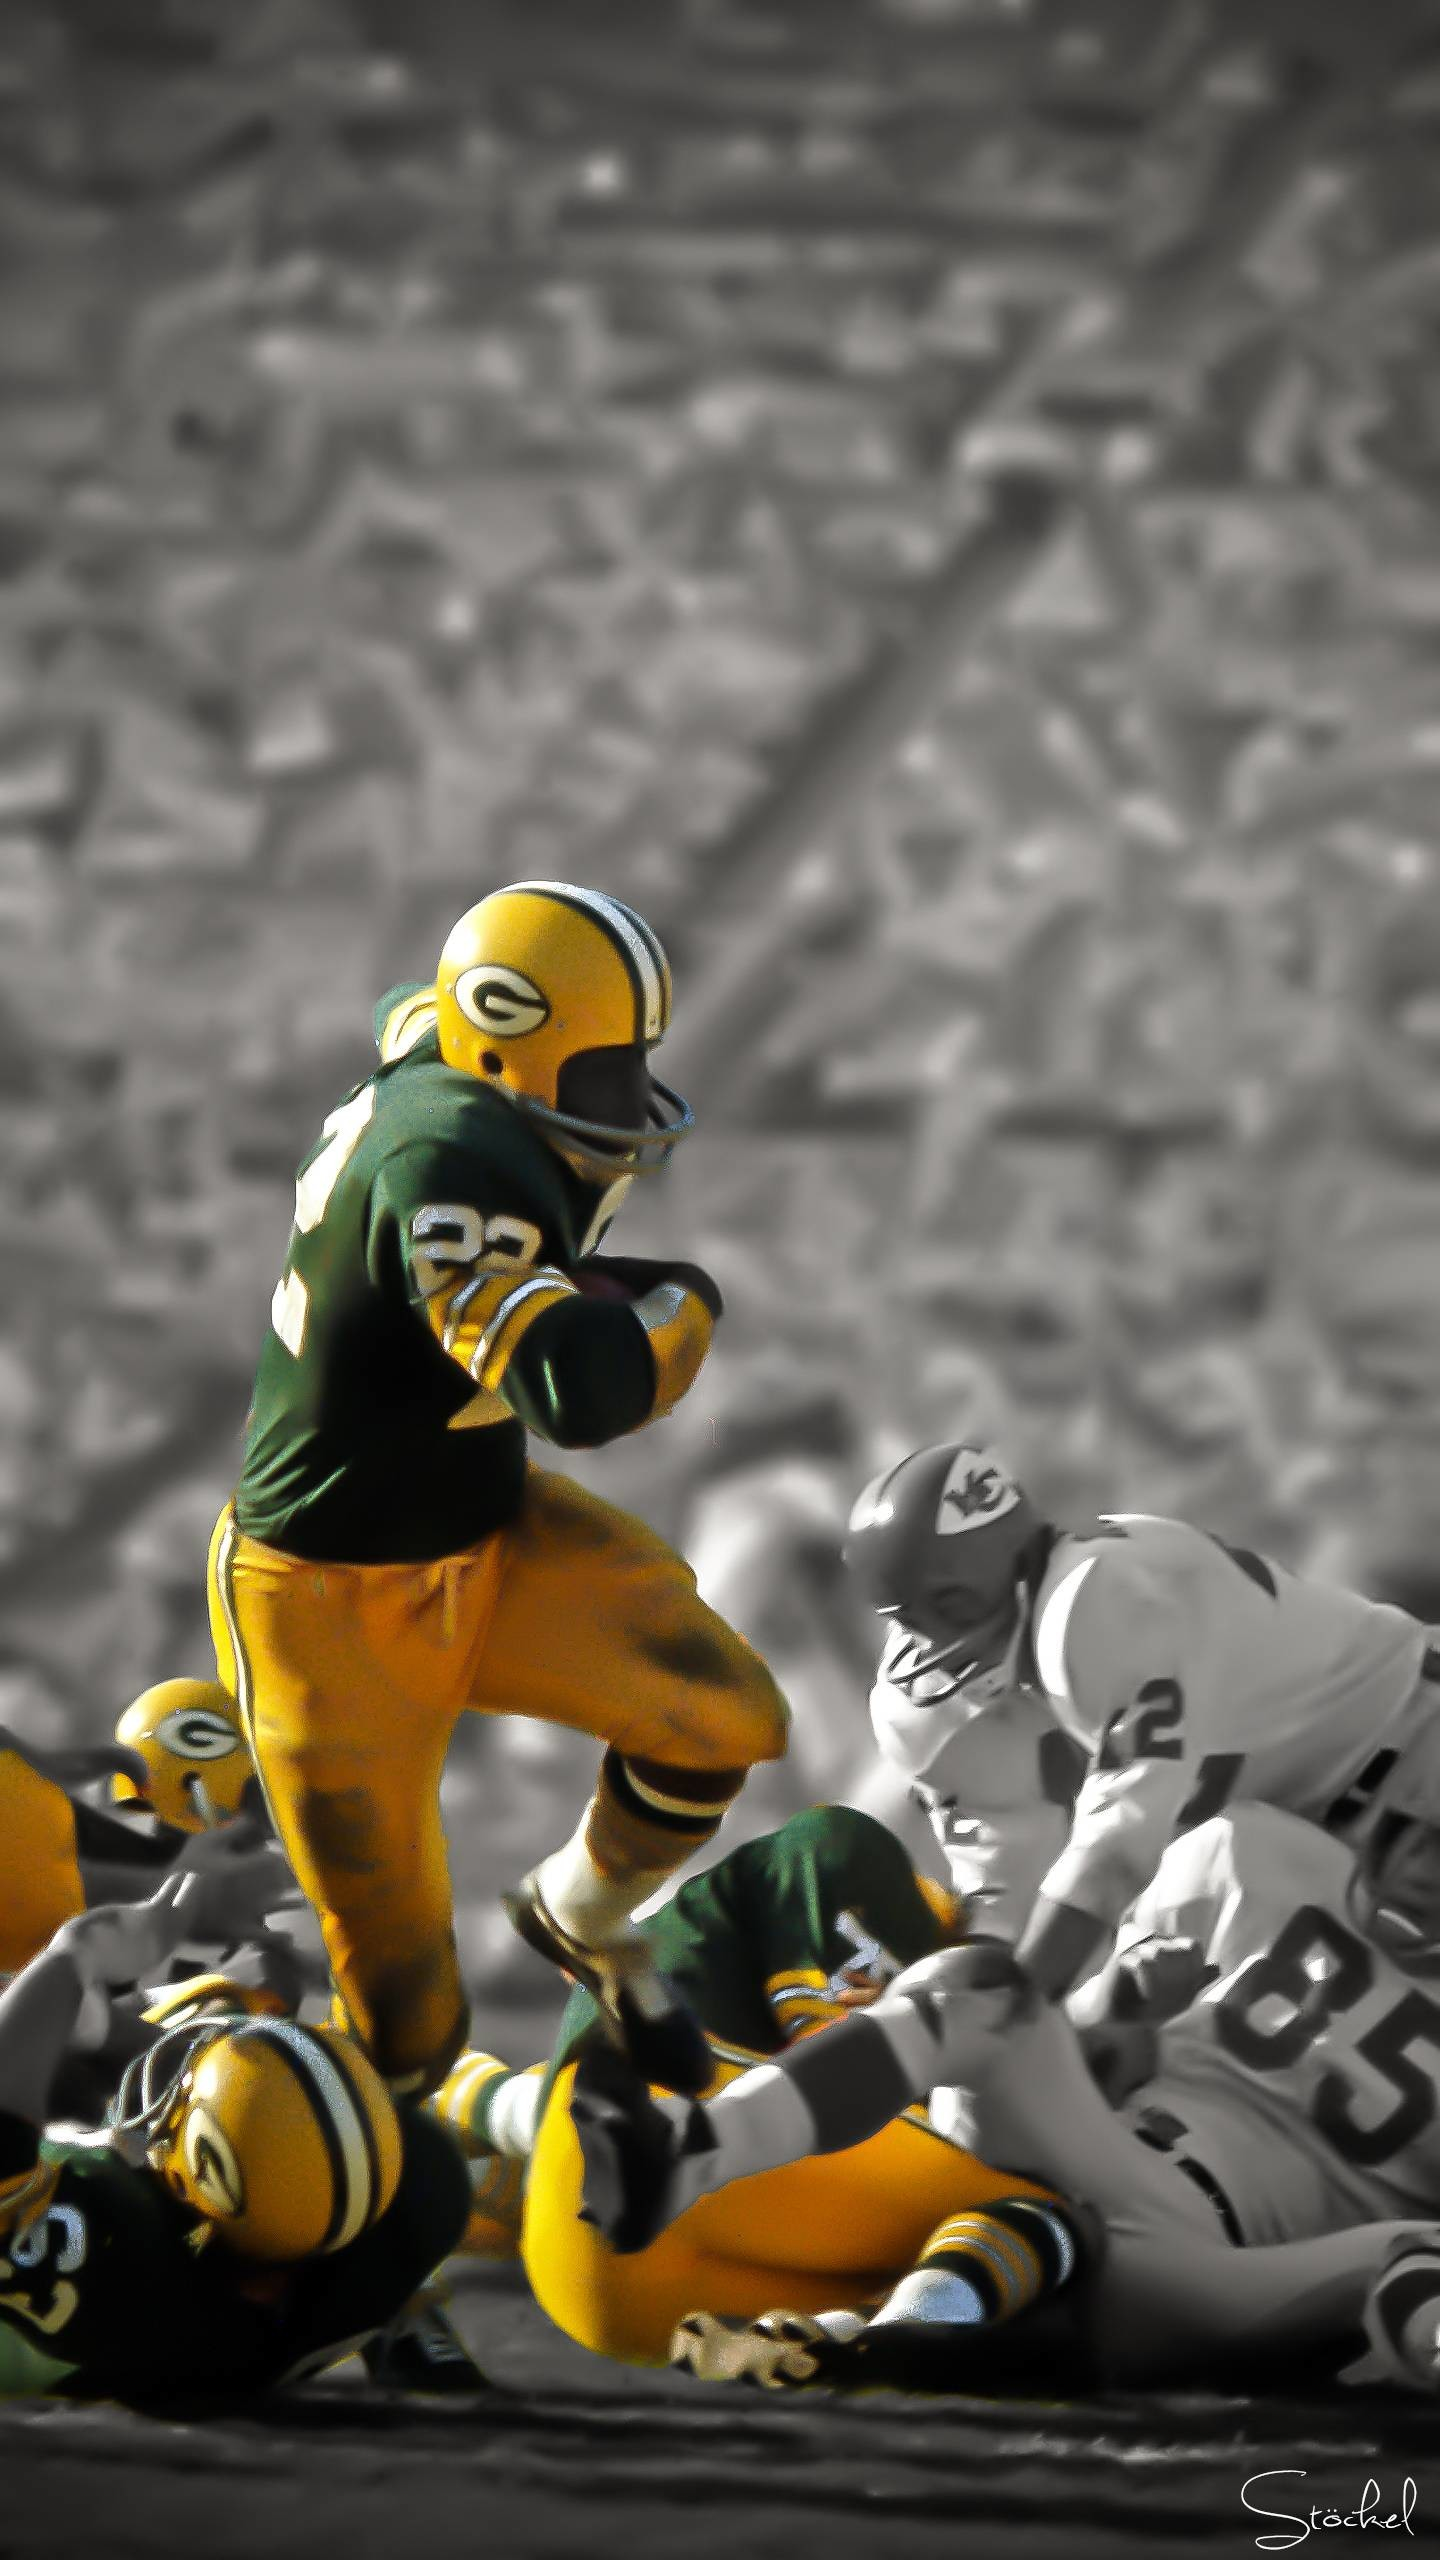 Green bay packers wallpaper 65 images 2000x1126 green bay packers jpg 2000x1126 backgrounds green bay packers gloves voltagebd Image collections